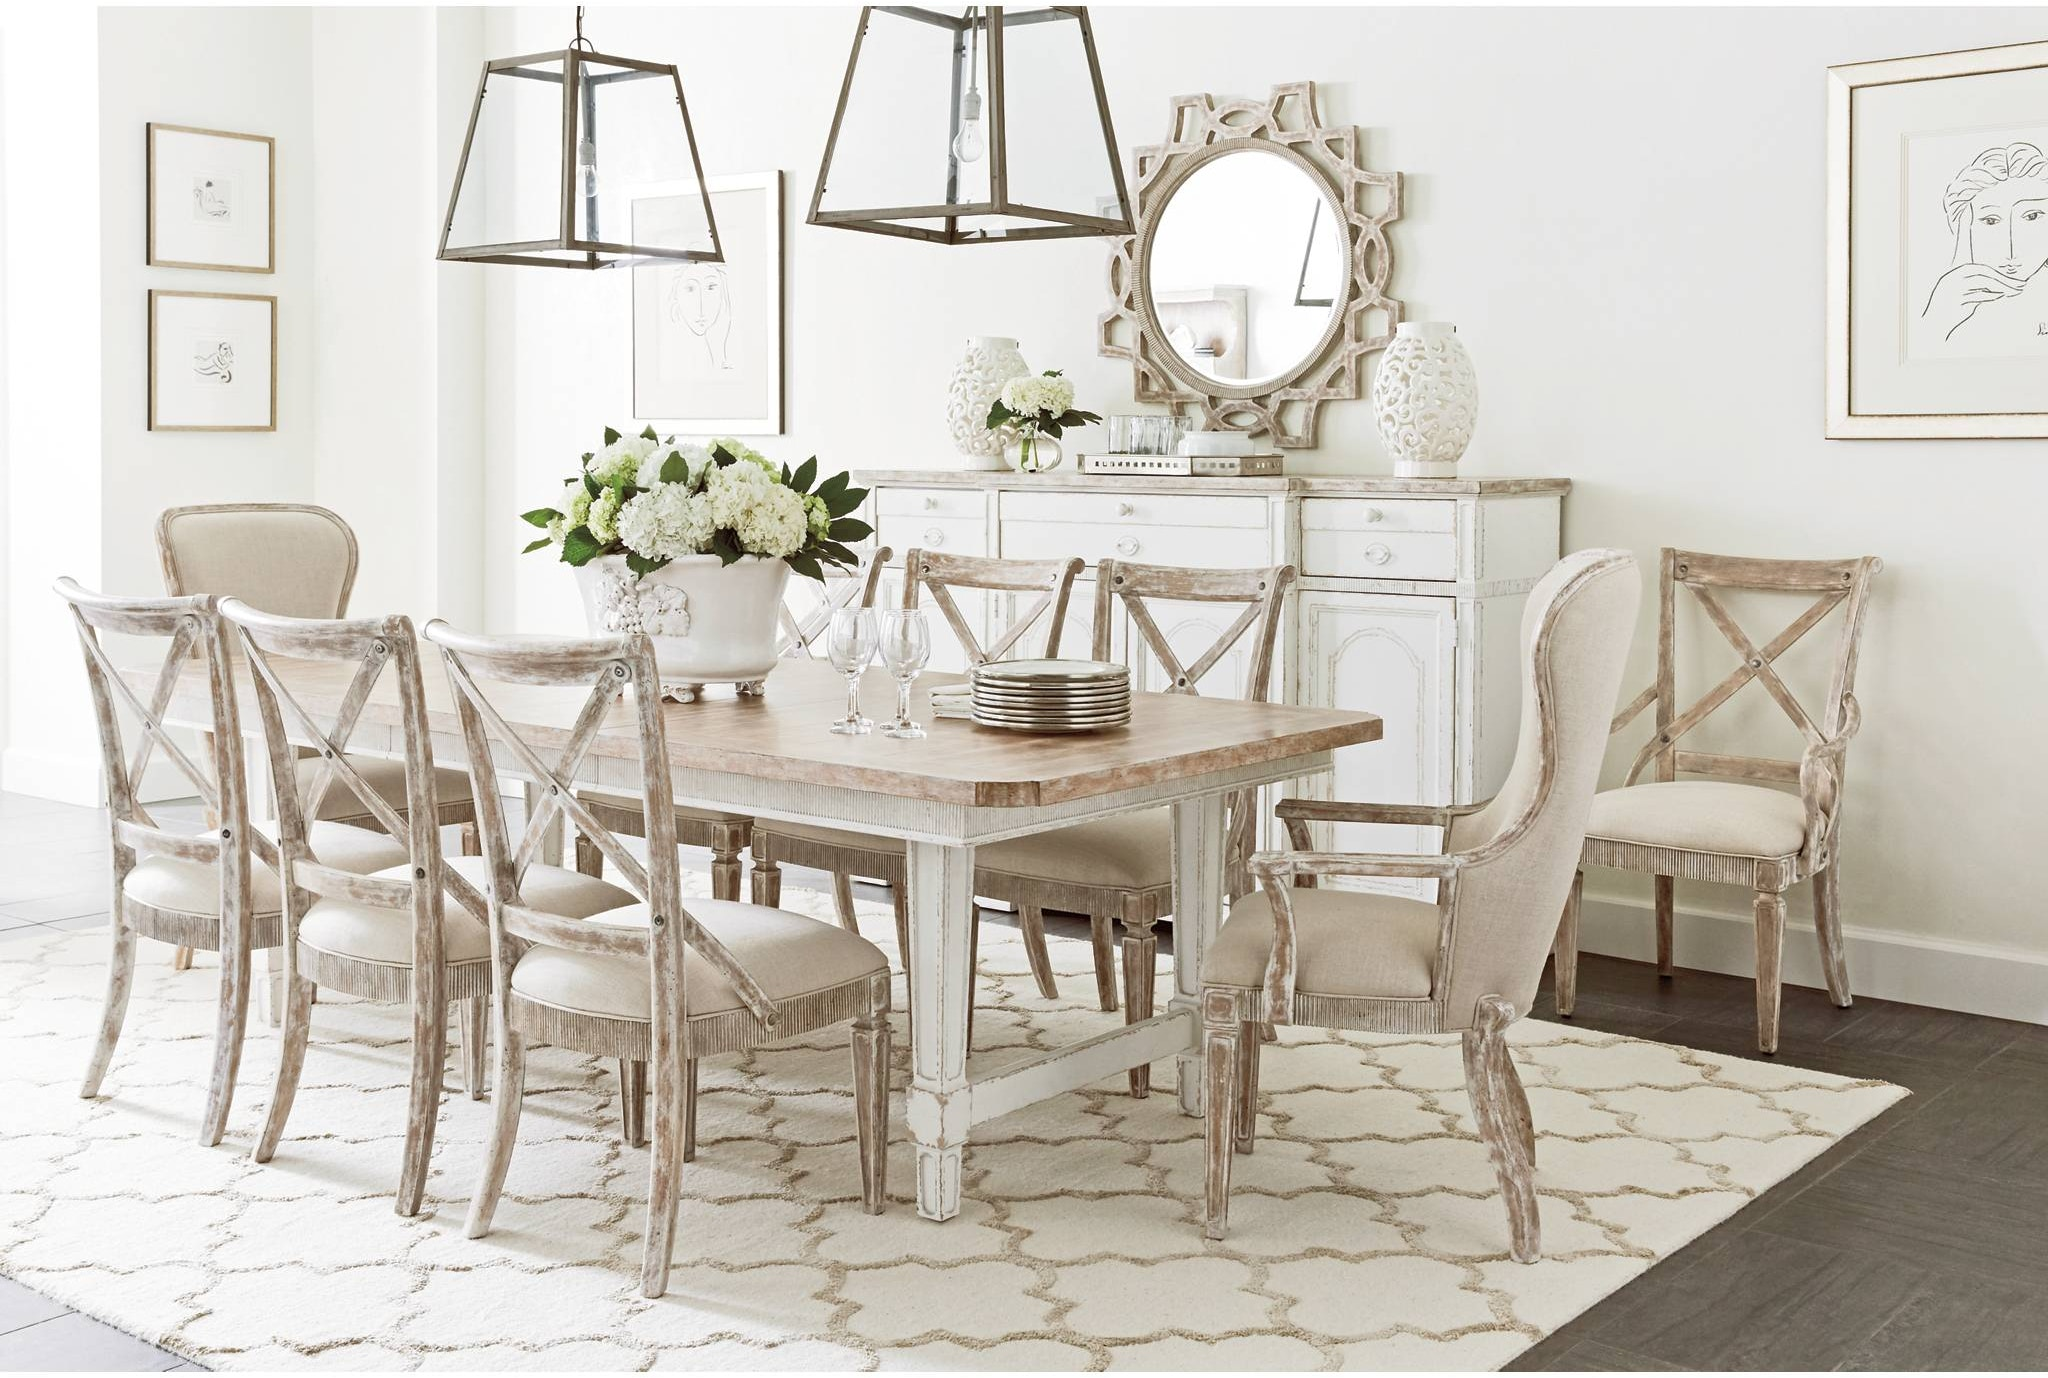 Stanley Furniture Dining Room Dining Table 615 21 36